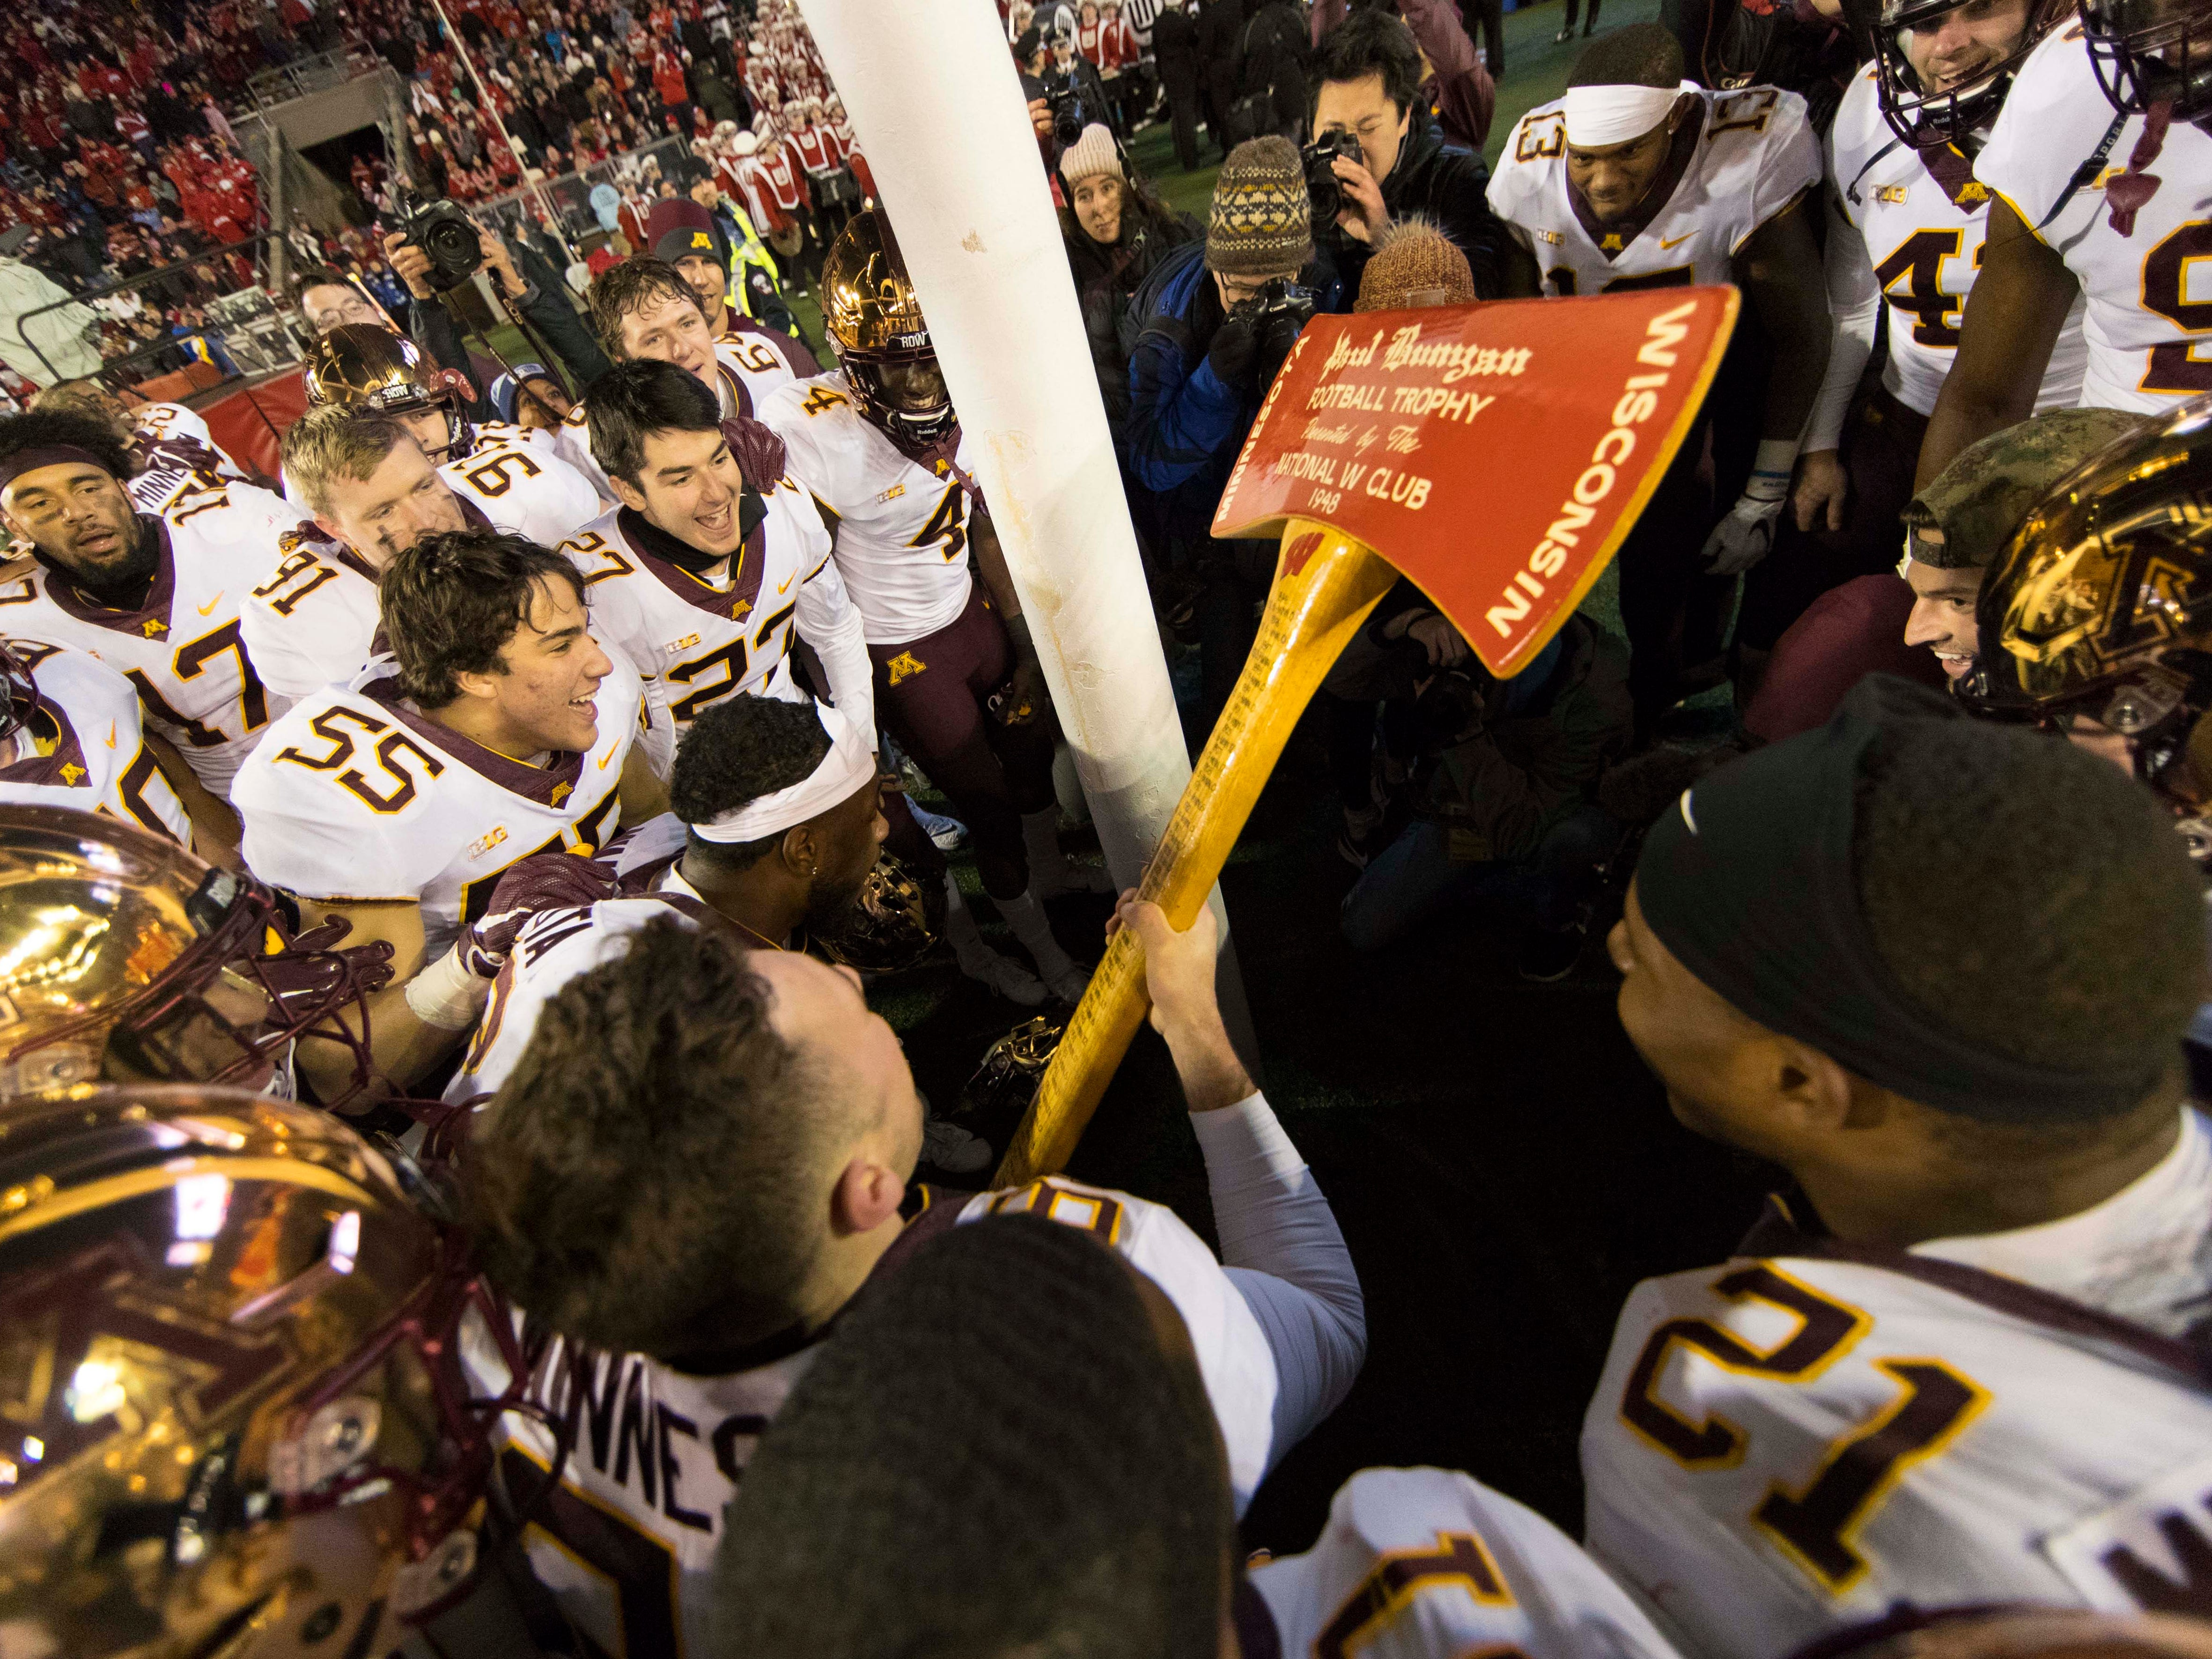 Paul Bunyan's Axe: Minnesota players celebrate with the Axe after a 37-15 win over Wisconsin at Camp Randall Stadium on Nov. 24.